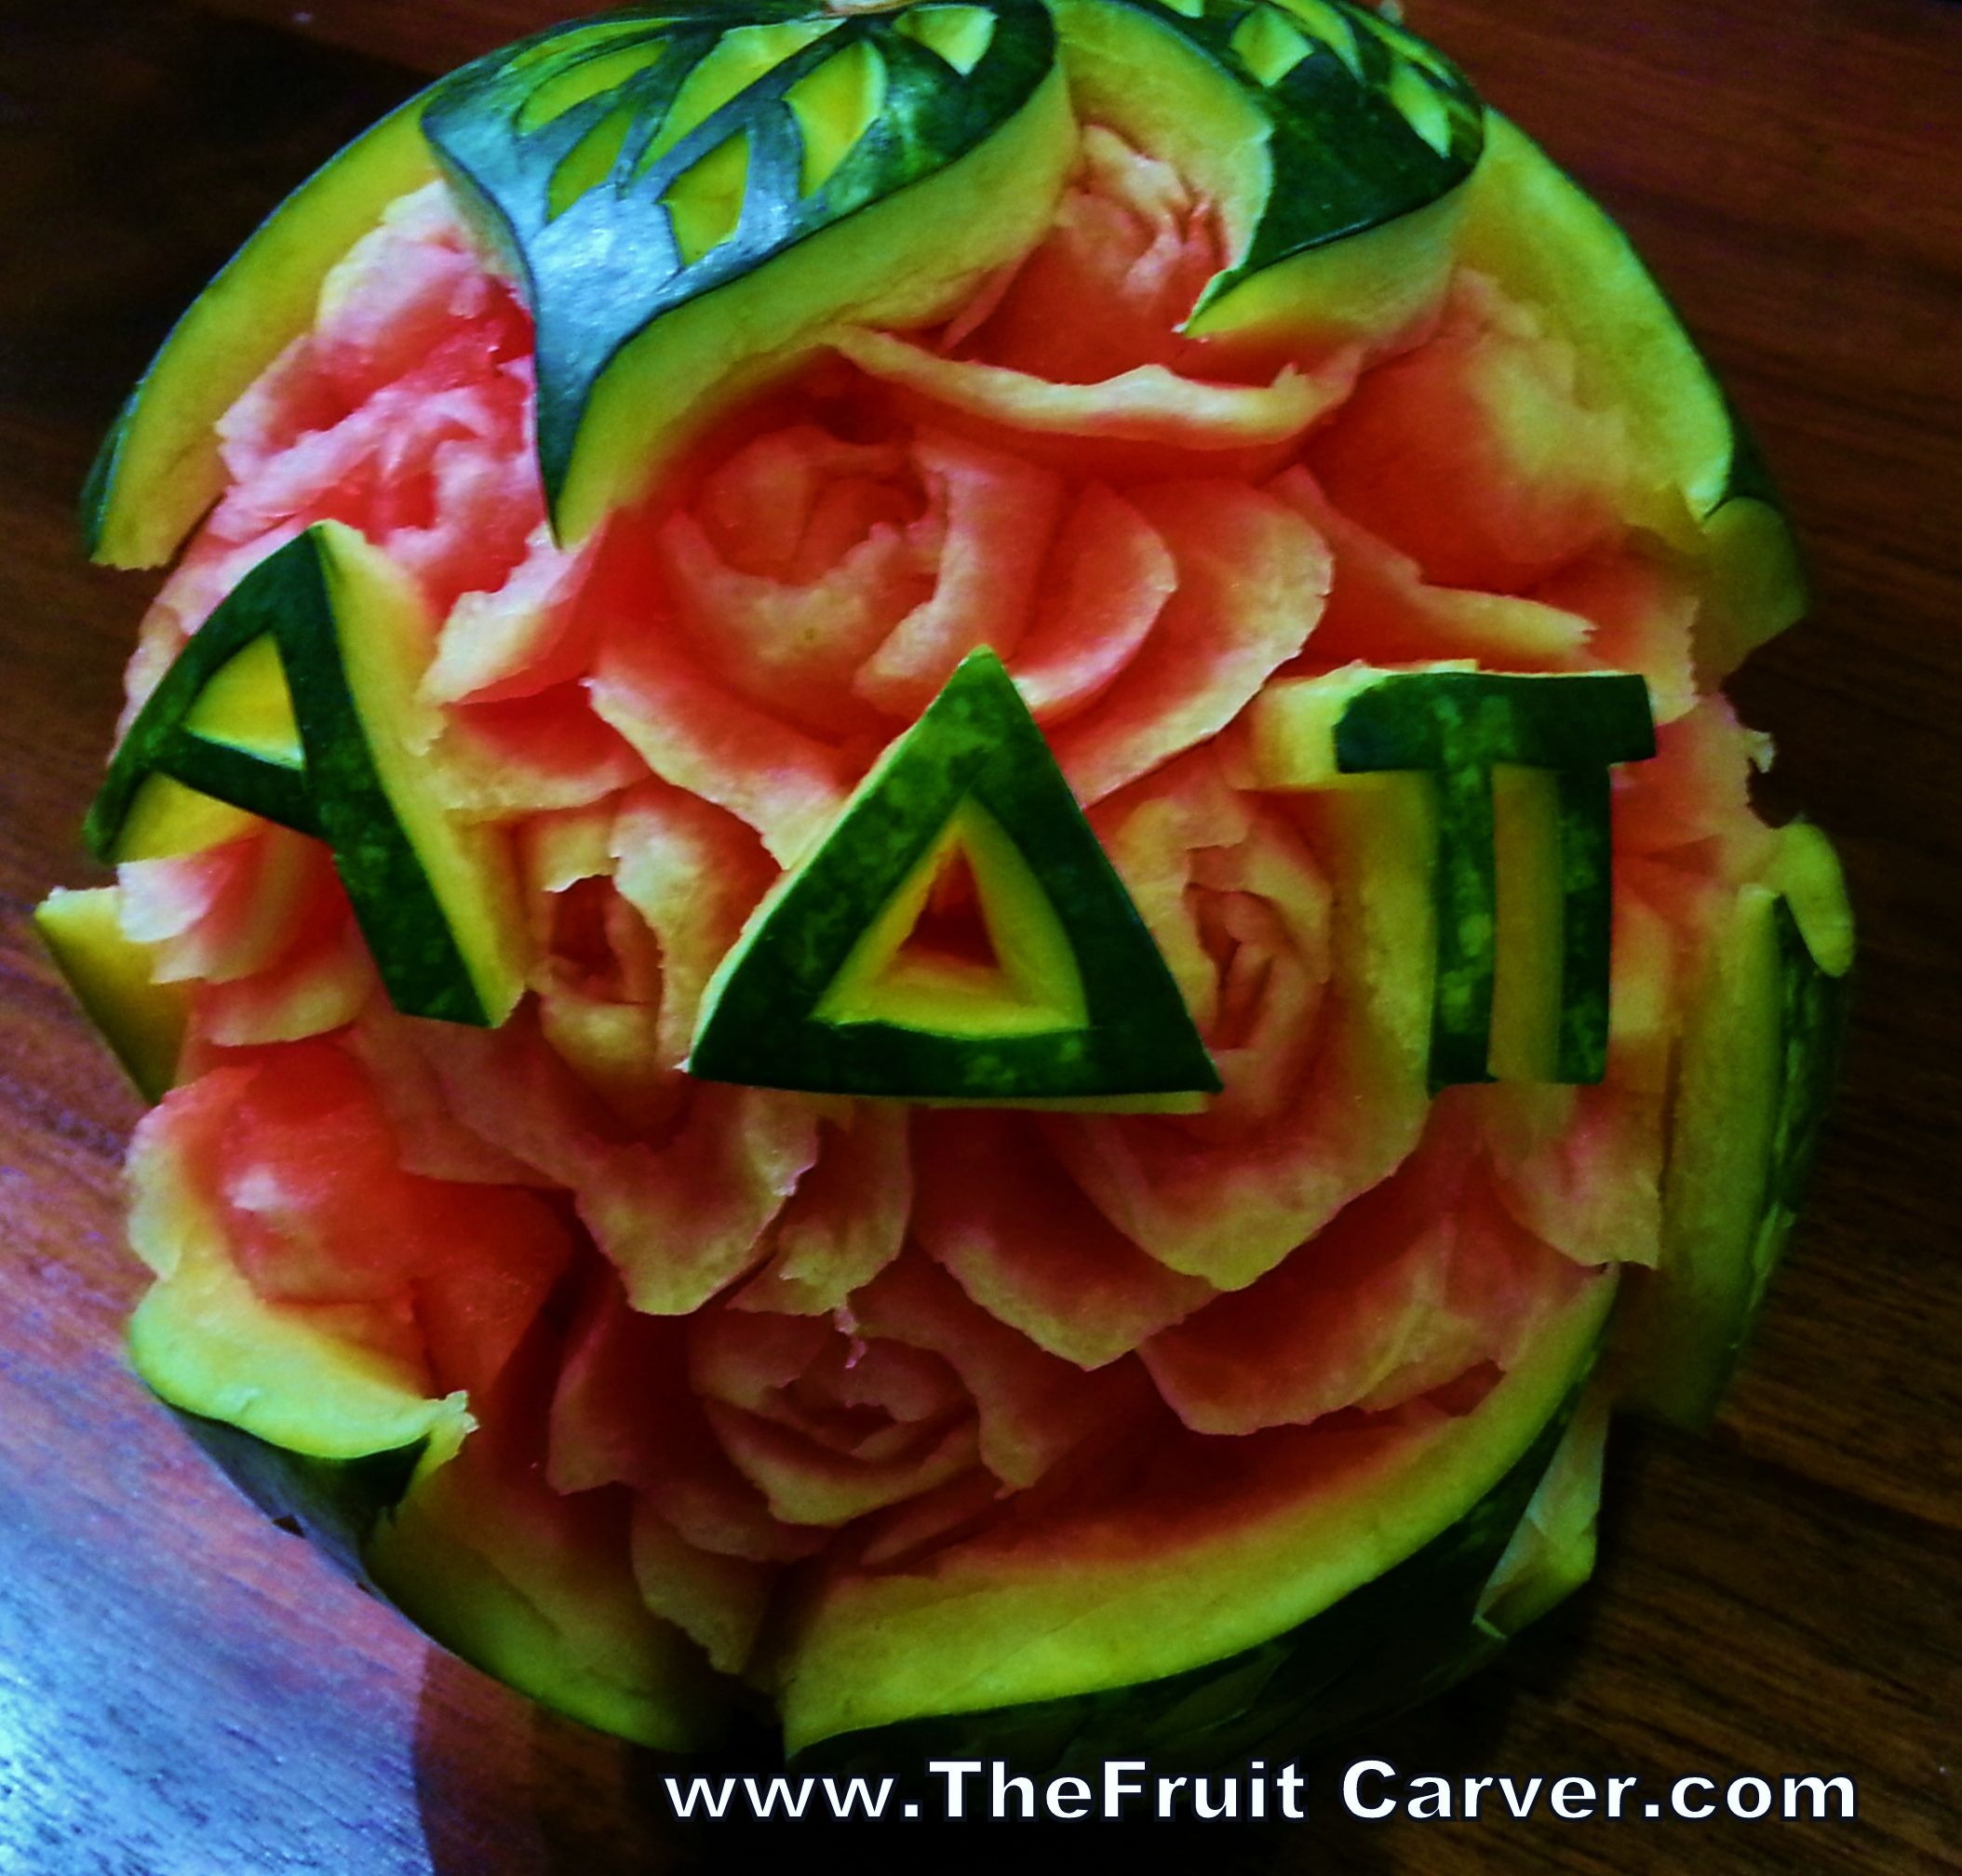 Do you know an alpha delta pi share this watermelon carving by